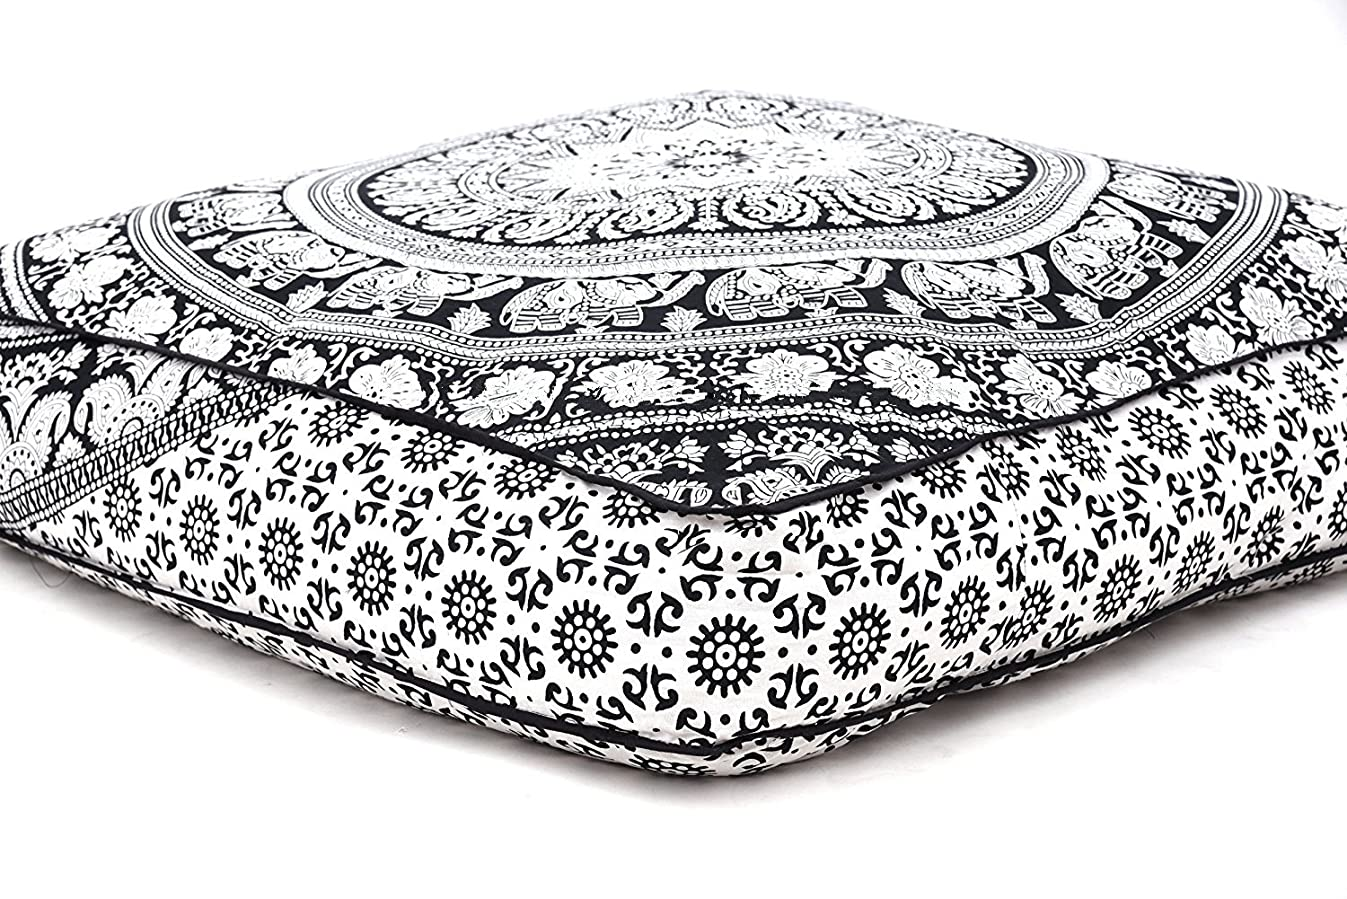 Elephant Mandala Floor Pillow Indian Square Ottoman Pouf Large Meditation Pillow Oversized Outdoor Bed 35 x 35x Inch